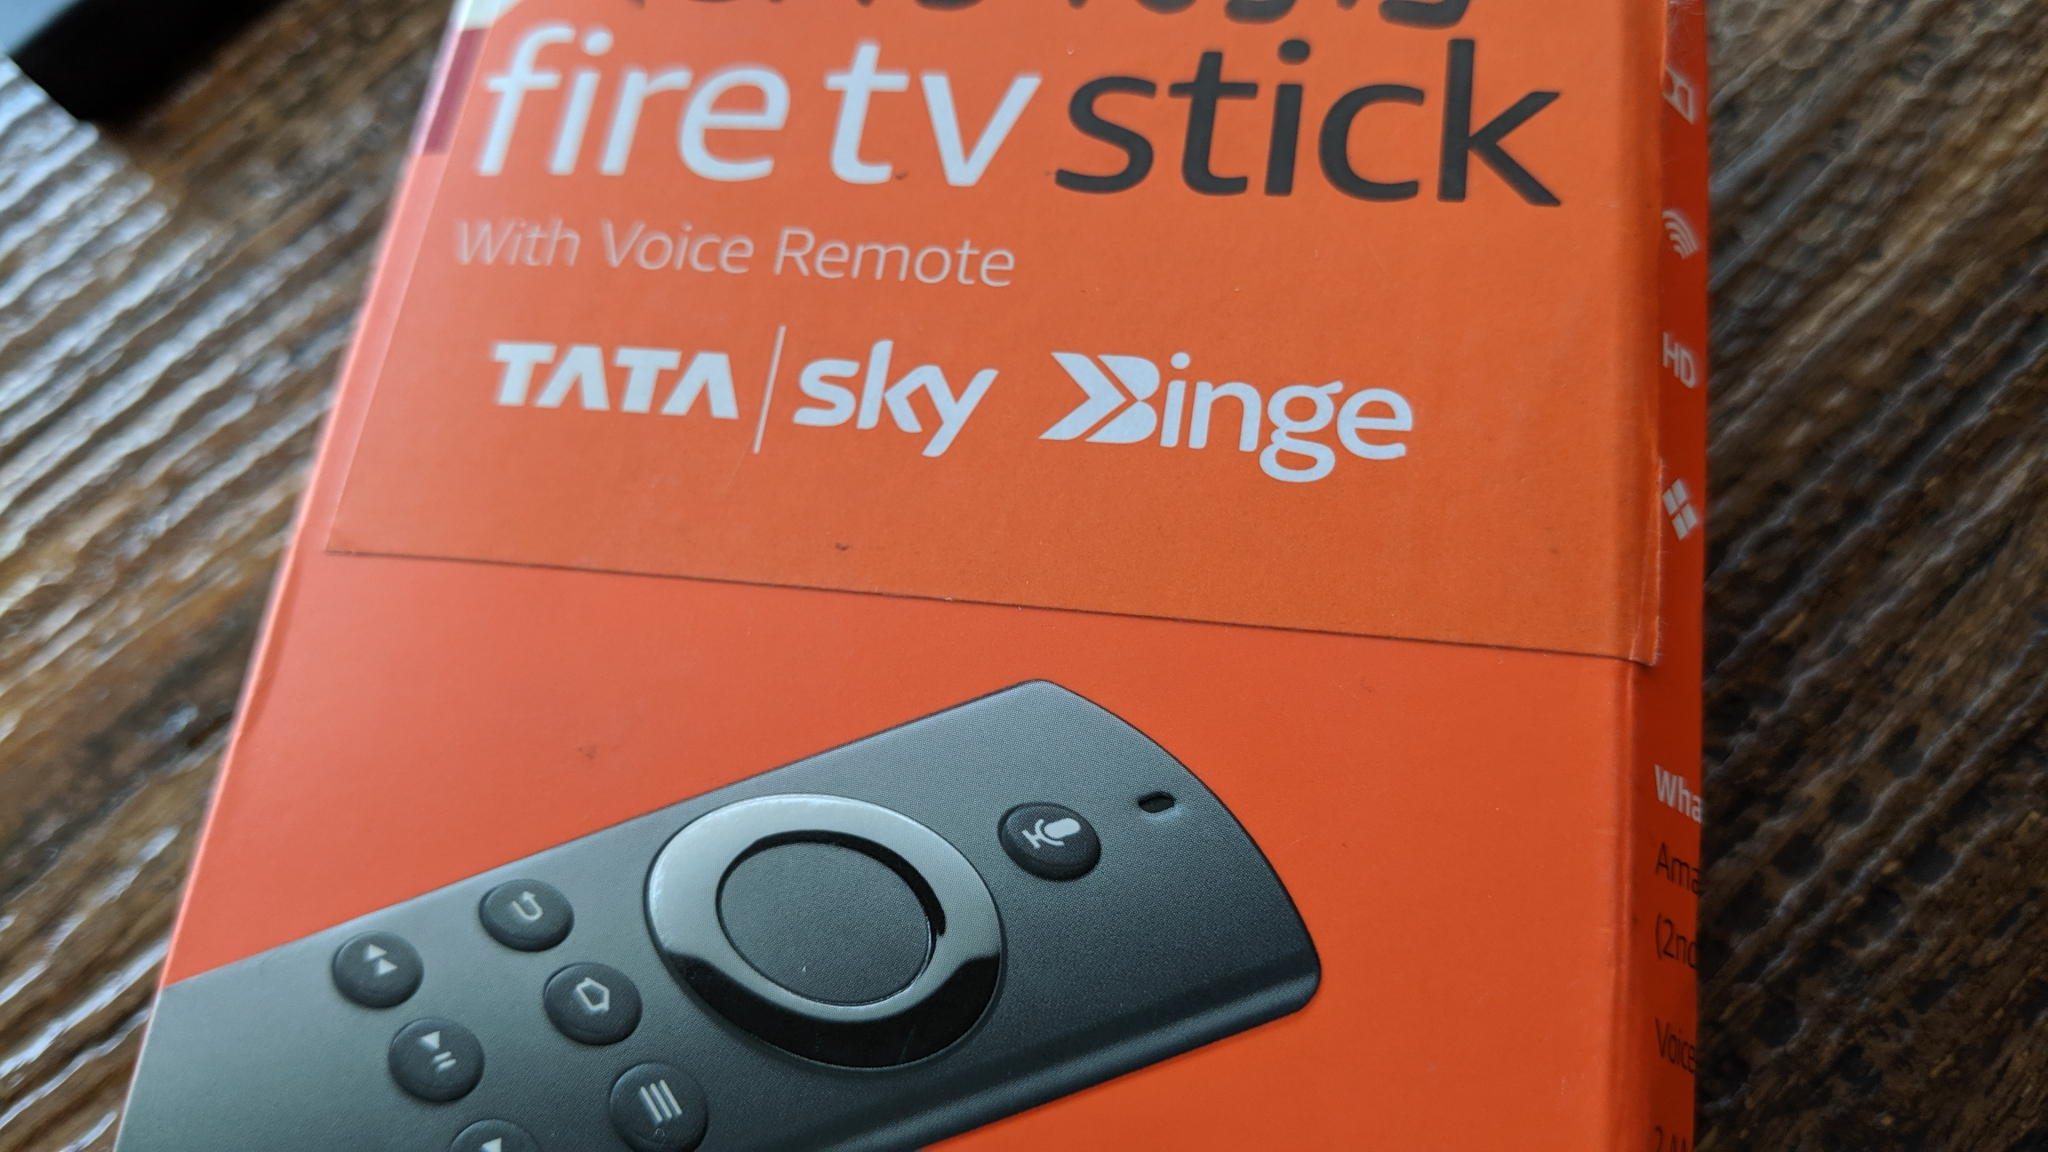 Tata Sky Binge Service Review: Worth Going for a DTH-OTT Combo?